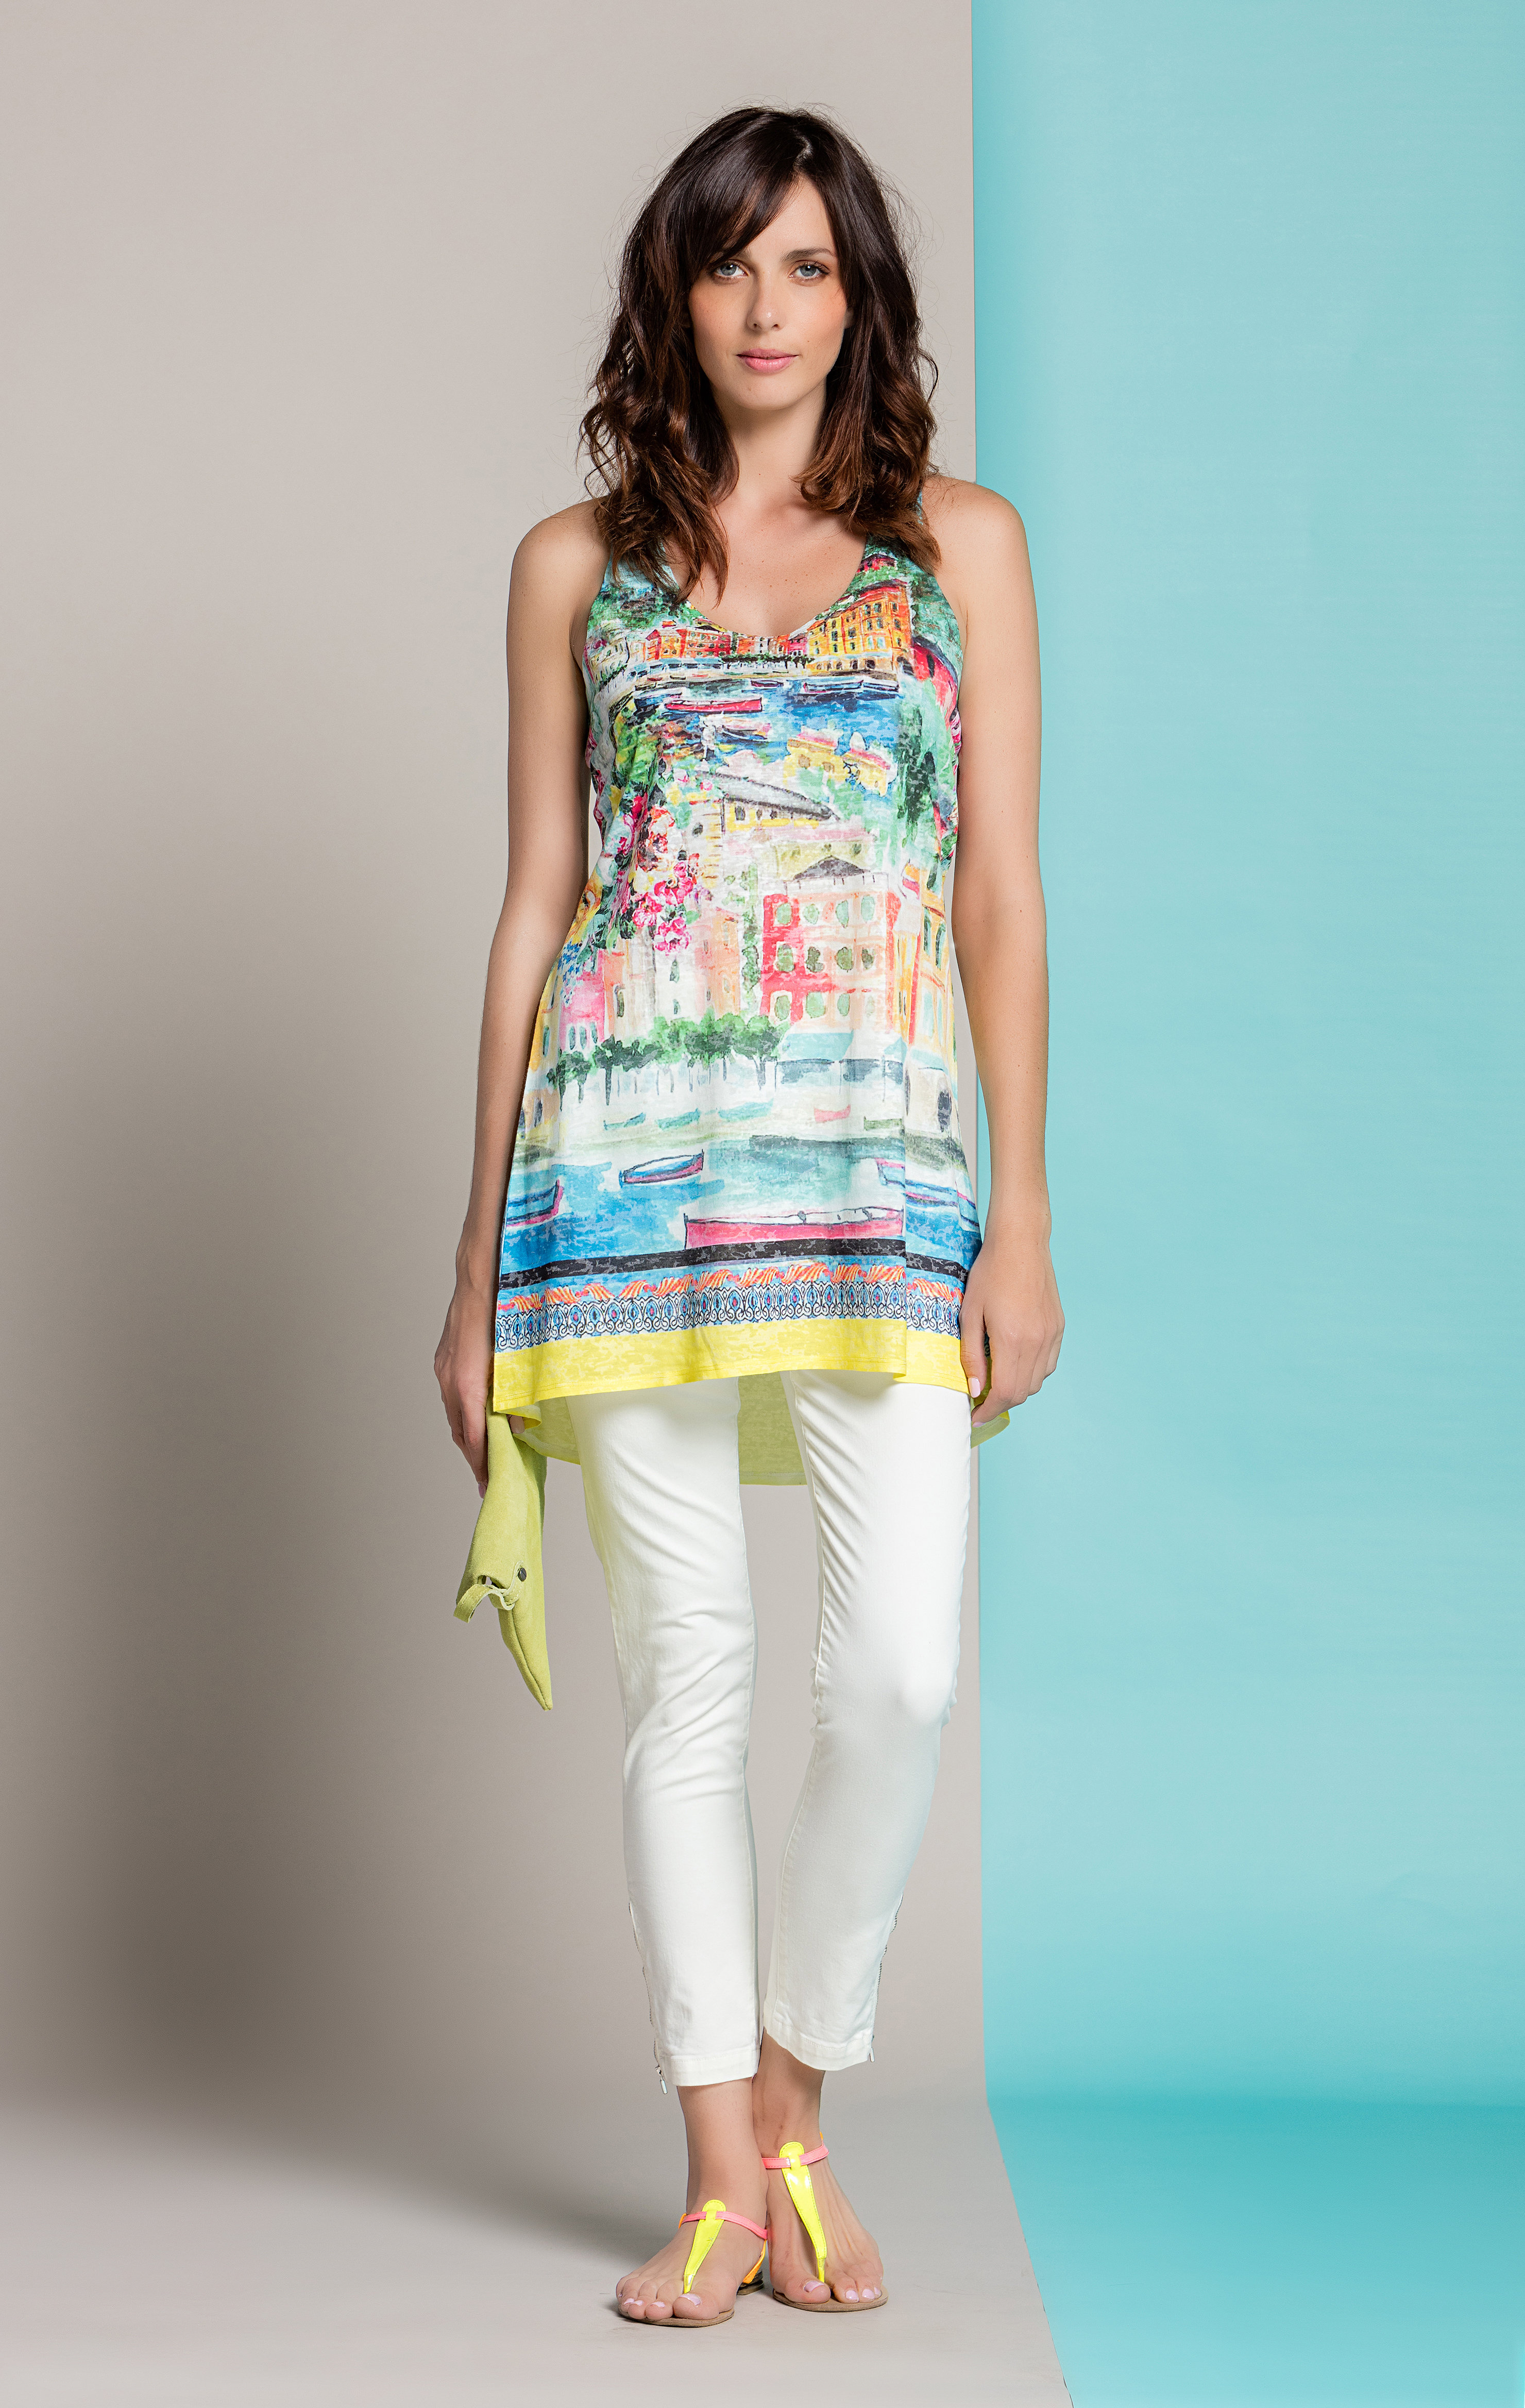 Paul Brial: Color Me Cinque Terre High Low Art Tunic